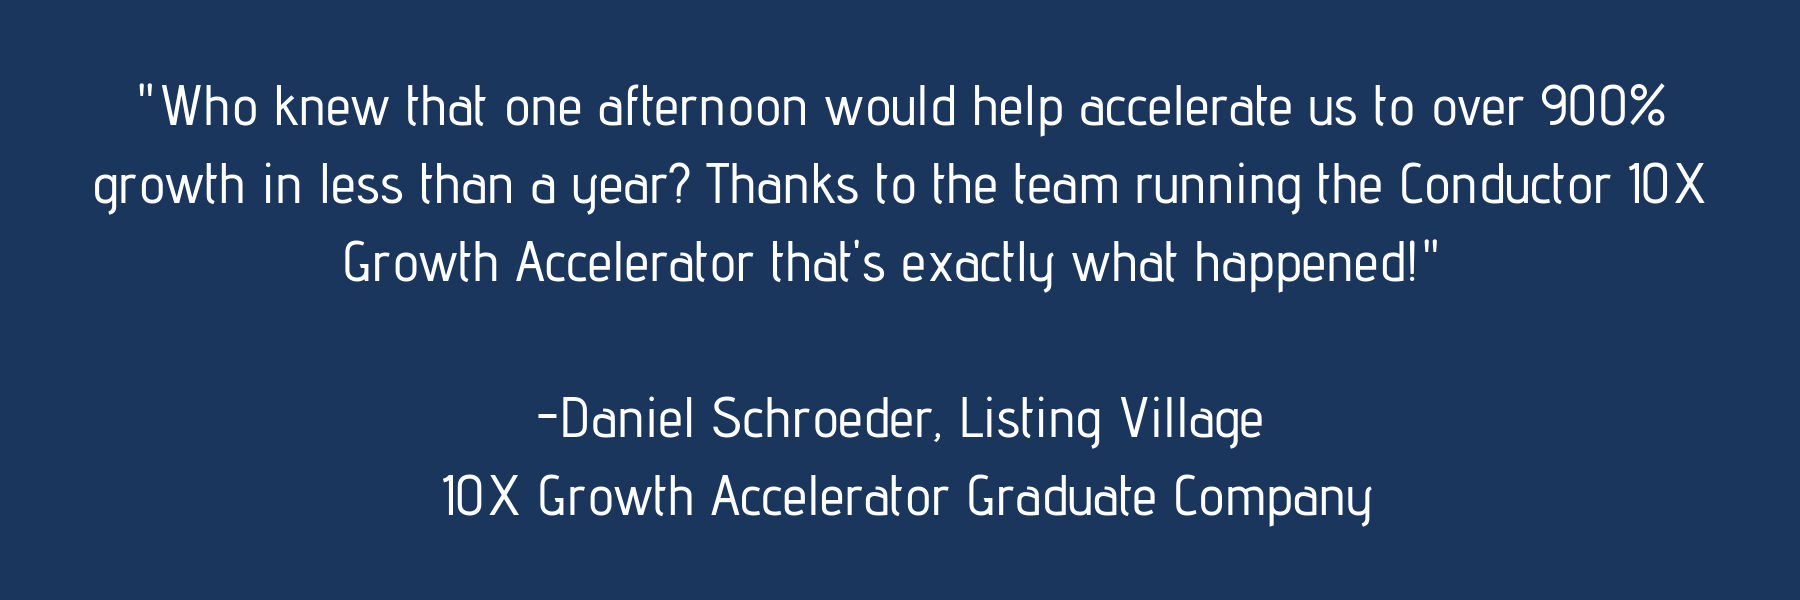 %22Who knew that one afternoon would help accelerate us to over 900% growth in less than a year? Thanks to the team running the Conductor 10X Growth Accelerator that's exactly what happened!%22 -Daniel Shro.png